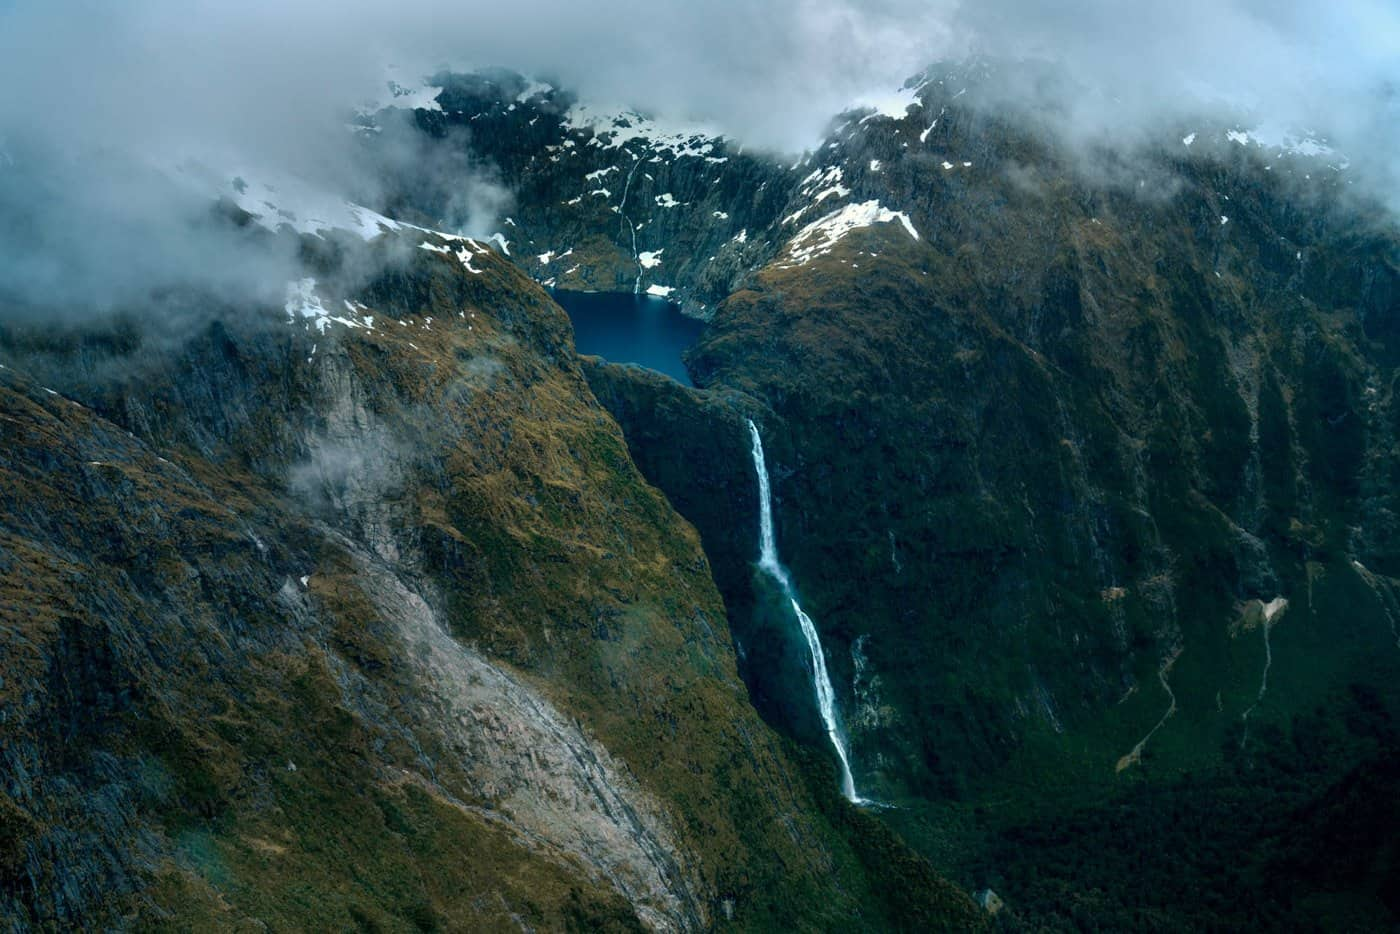 The views from the sky are an unbeatable way to see the Milford Sound and save time on your 7 day itinerary.